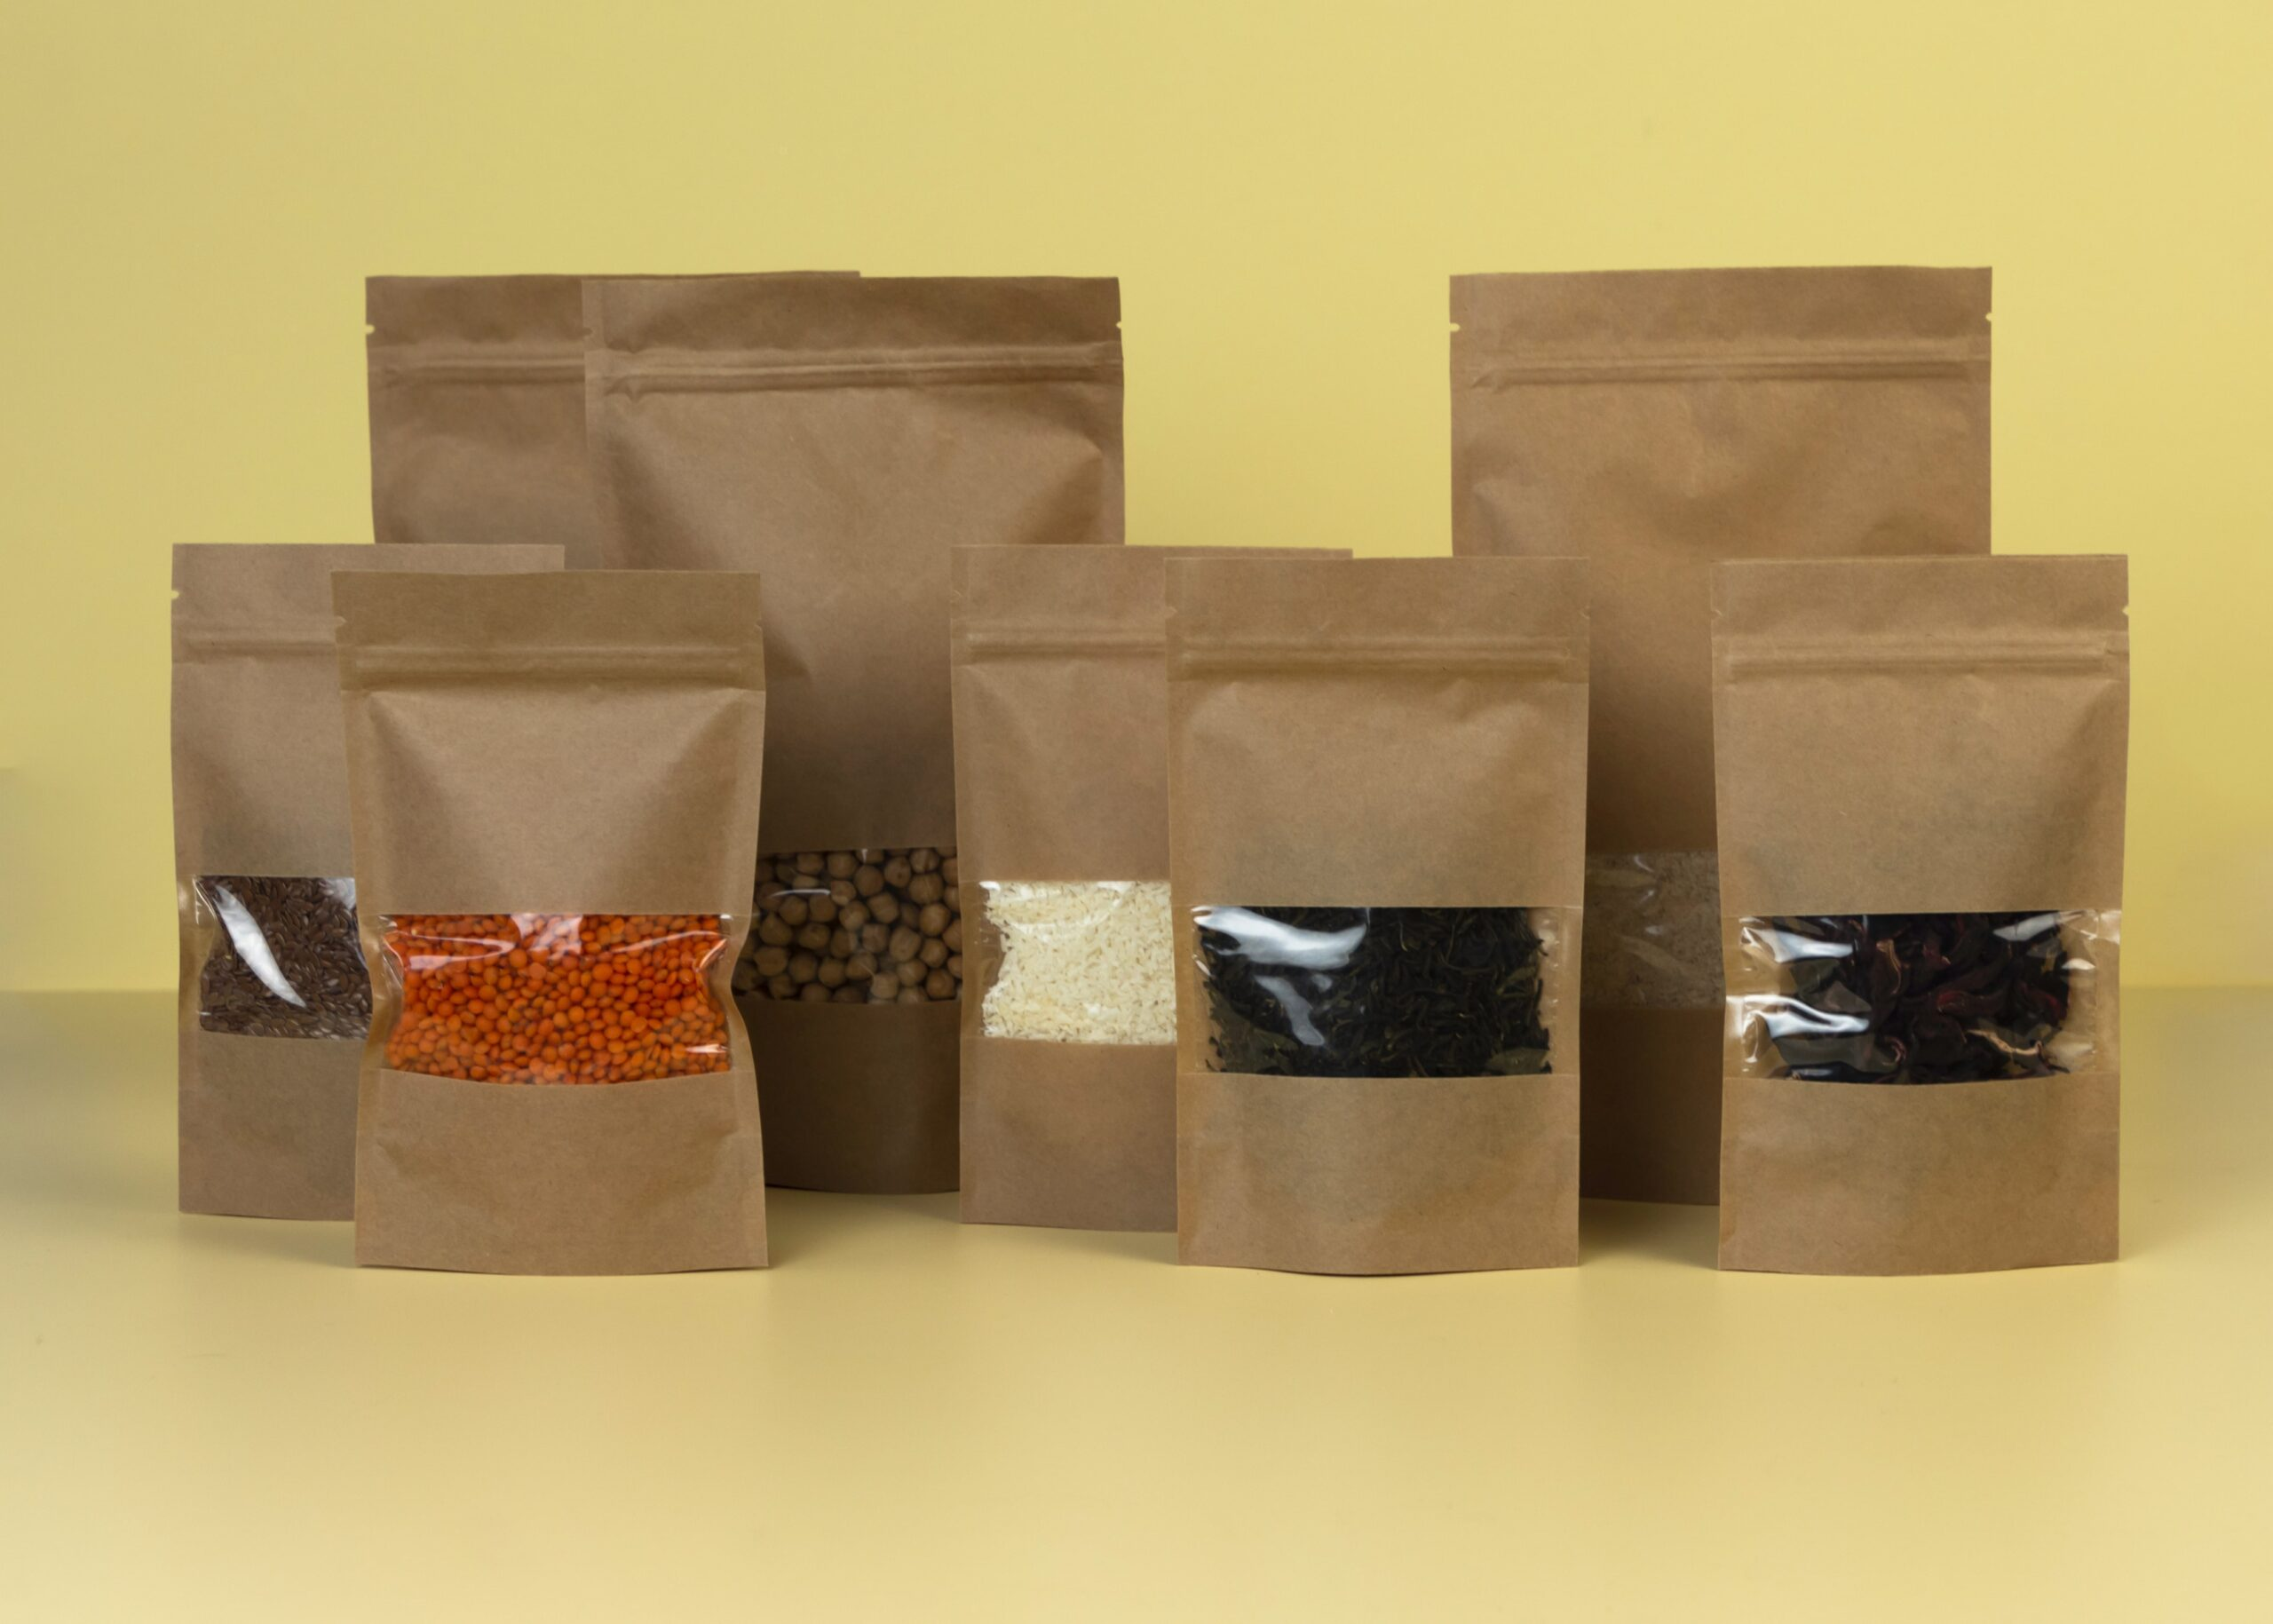 What are the benefits of flexible packaging